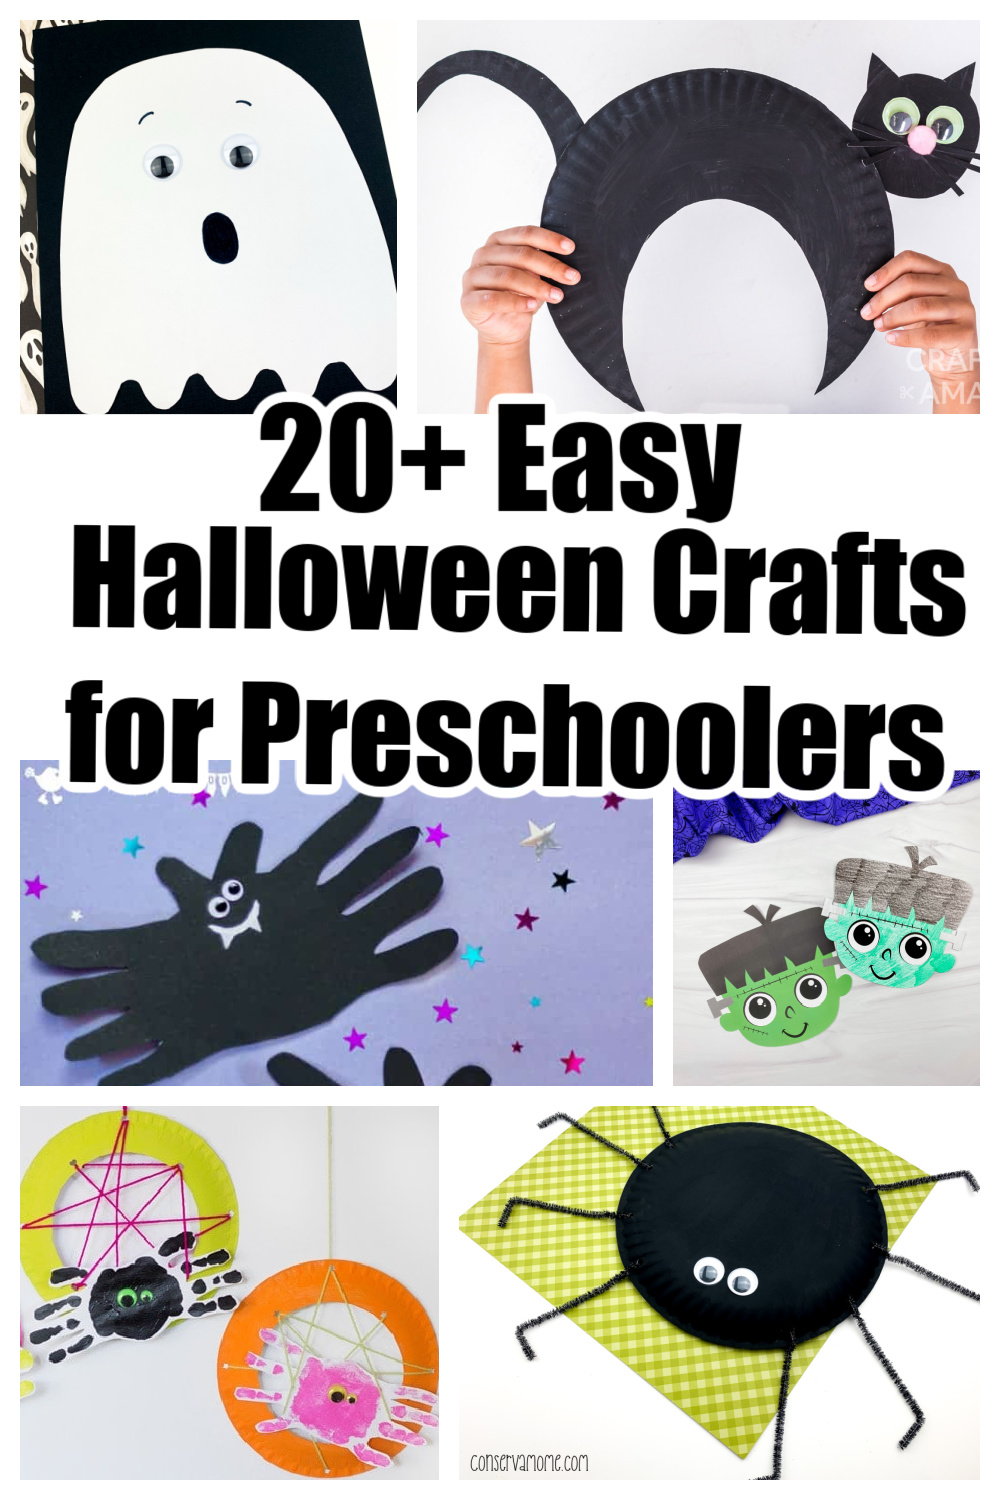 20+ Funtastic and Easy Halloween Crafts for Preschoolers